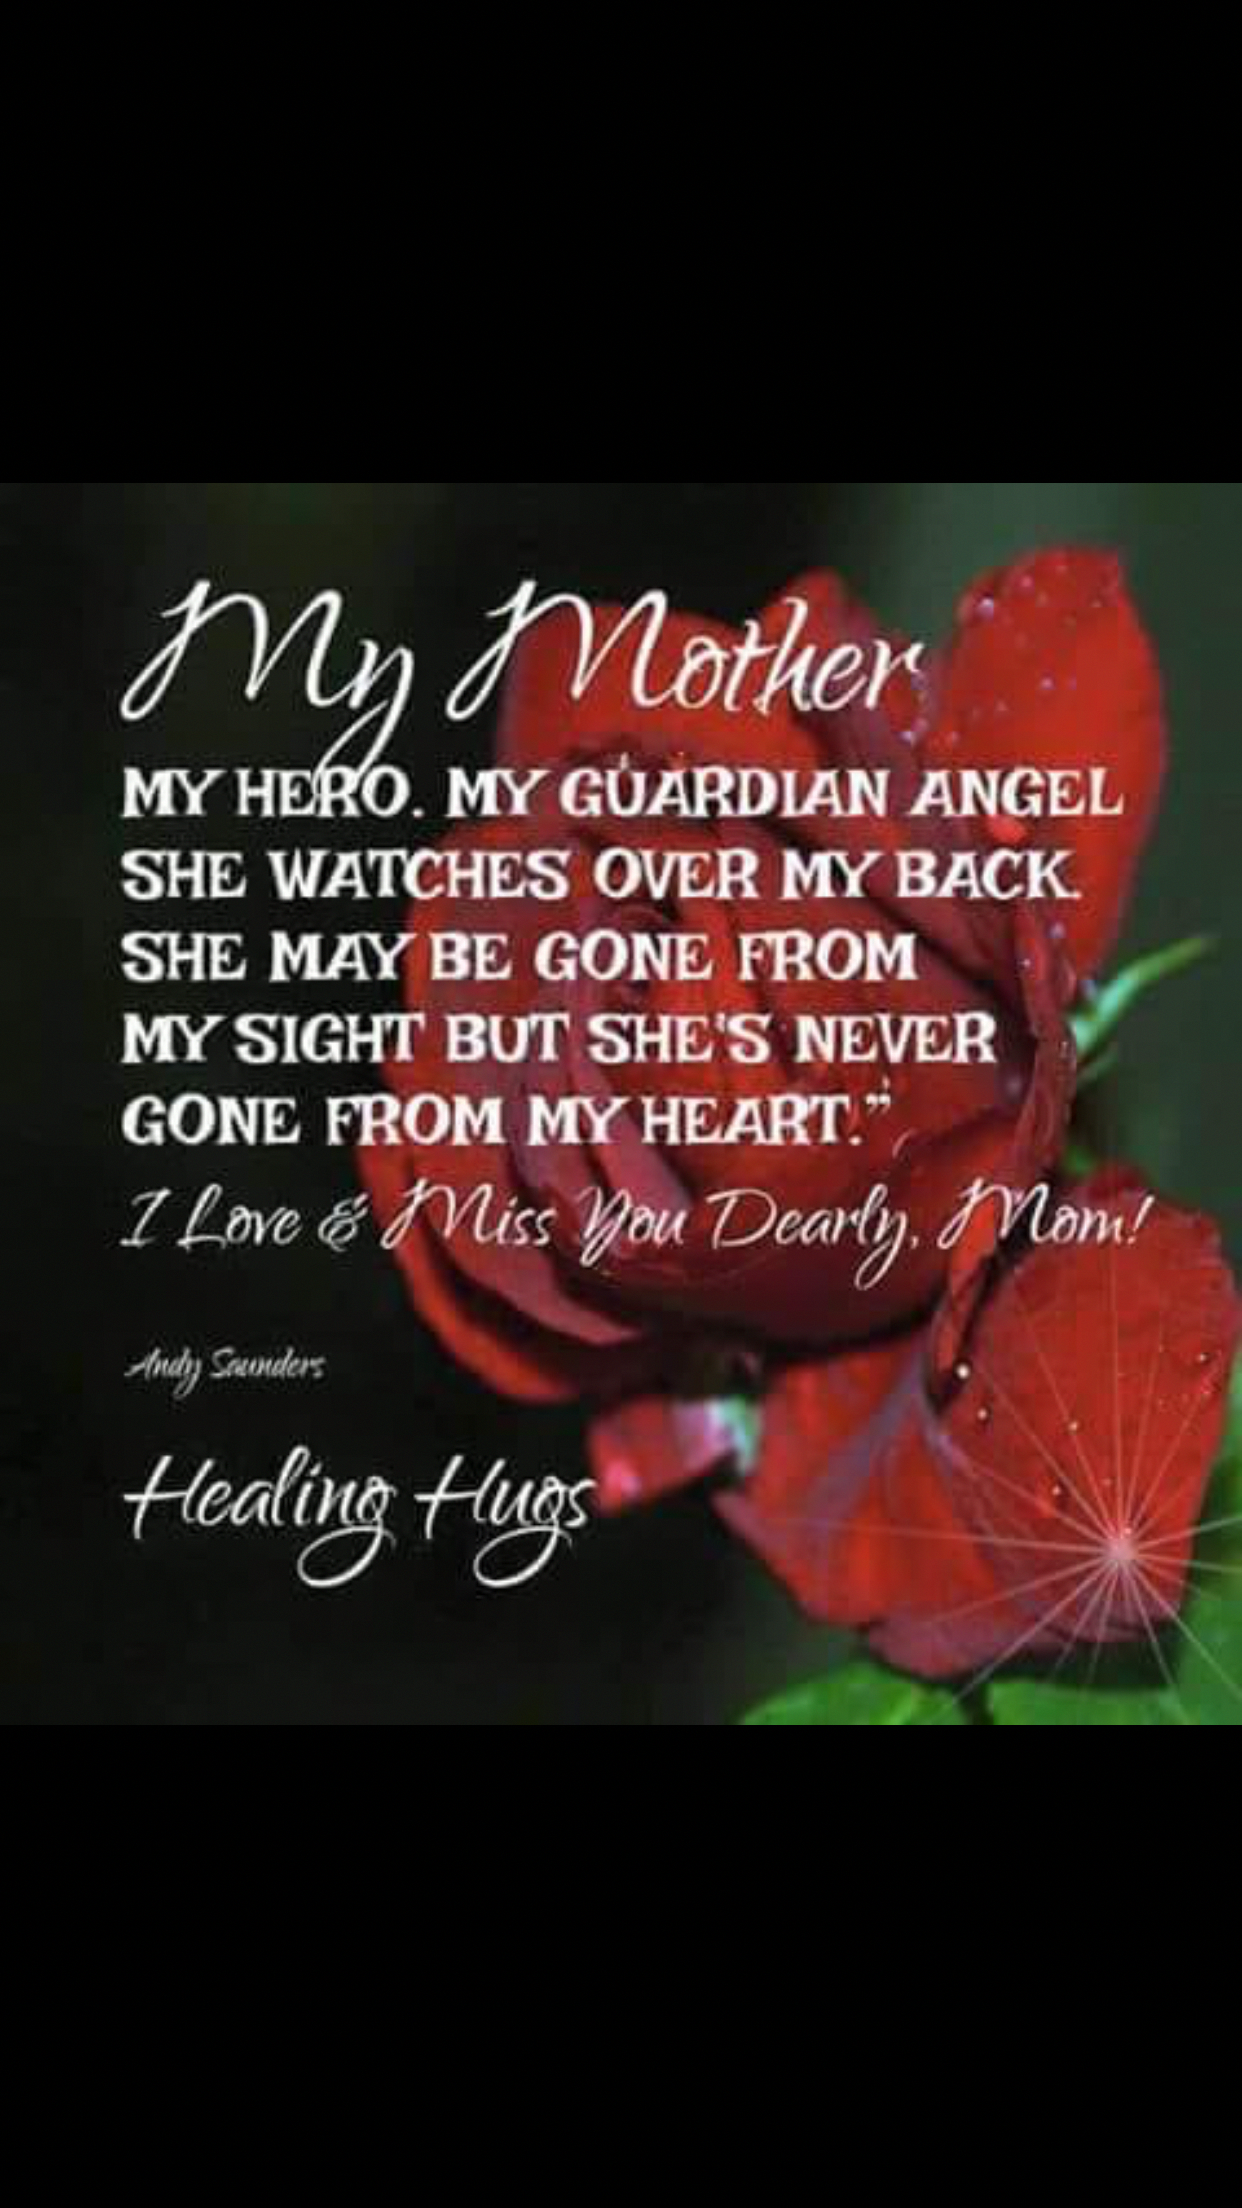 Miss you so much mom! 💔 #IMissYouQuotesforhim | My Mom